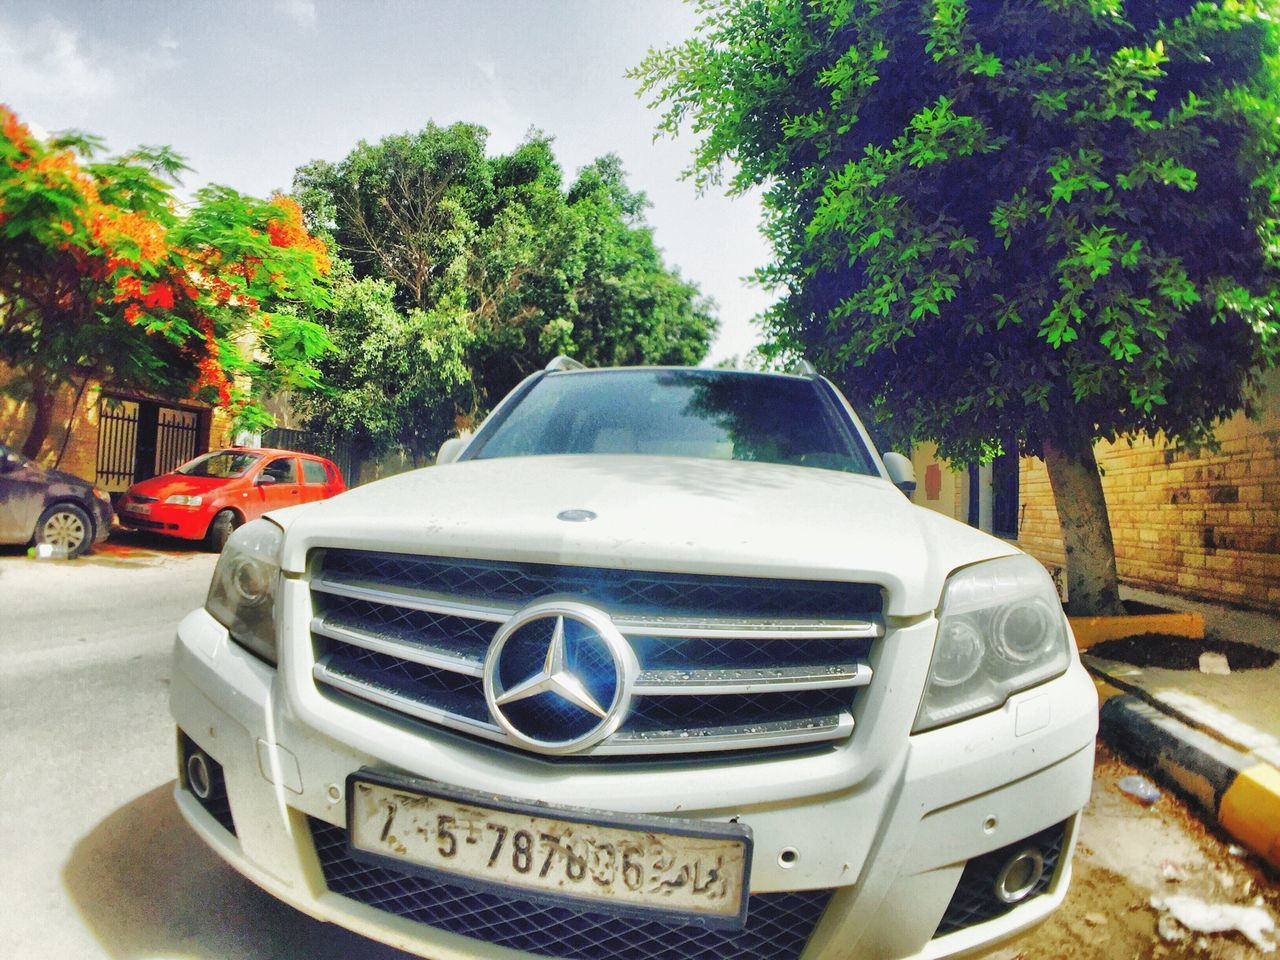 tree, car, transportation, mode of transport, land vehicle, no people, day, growth, sky, outdoors, nature, close-up